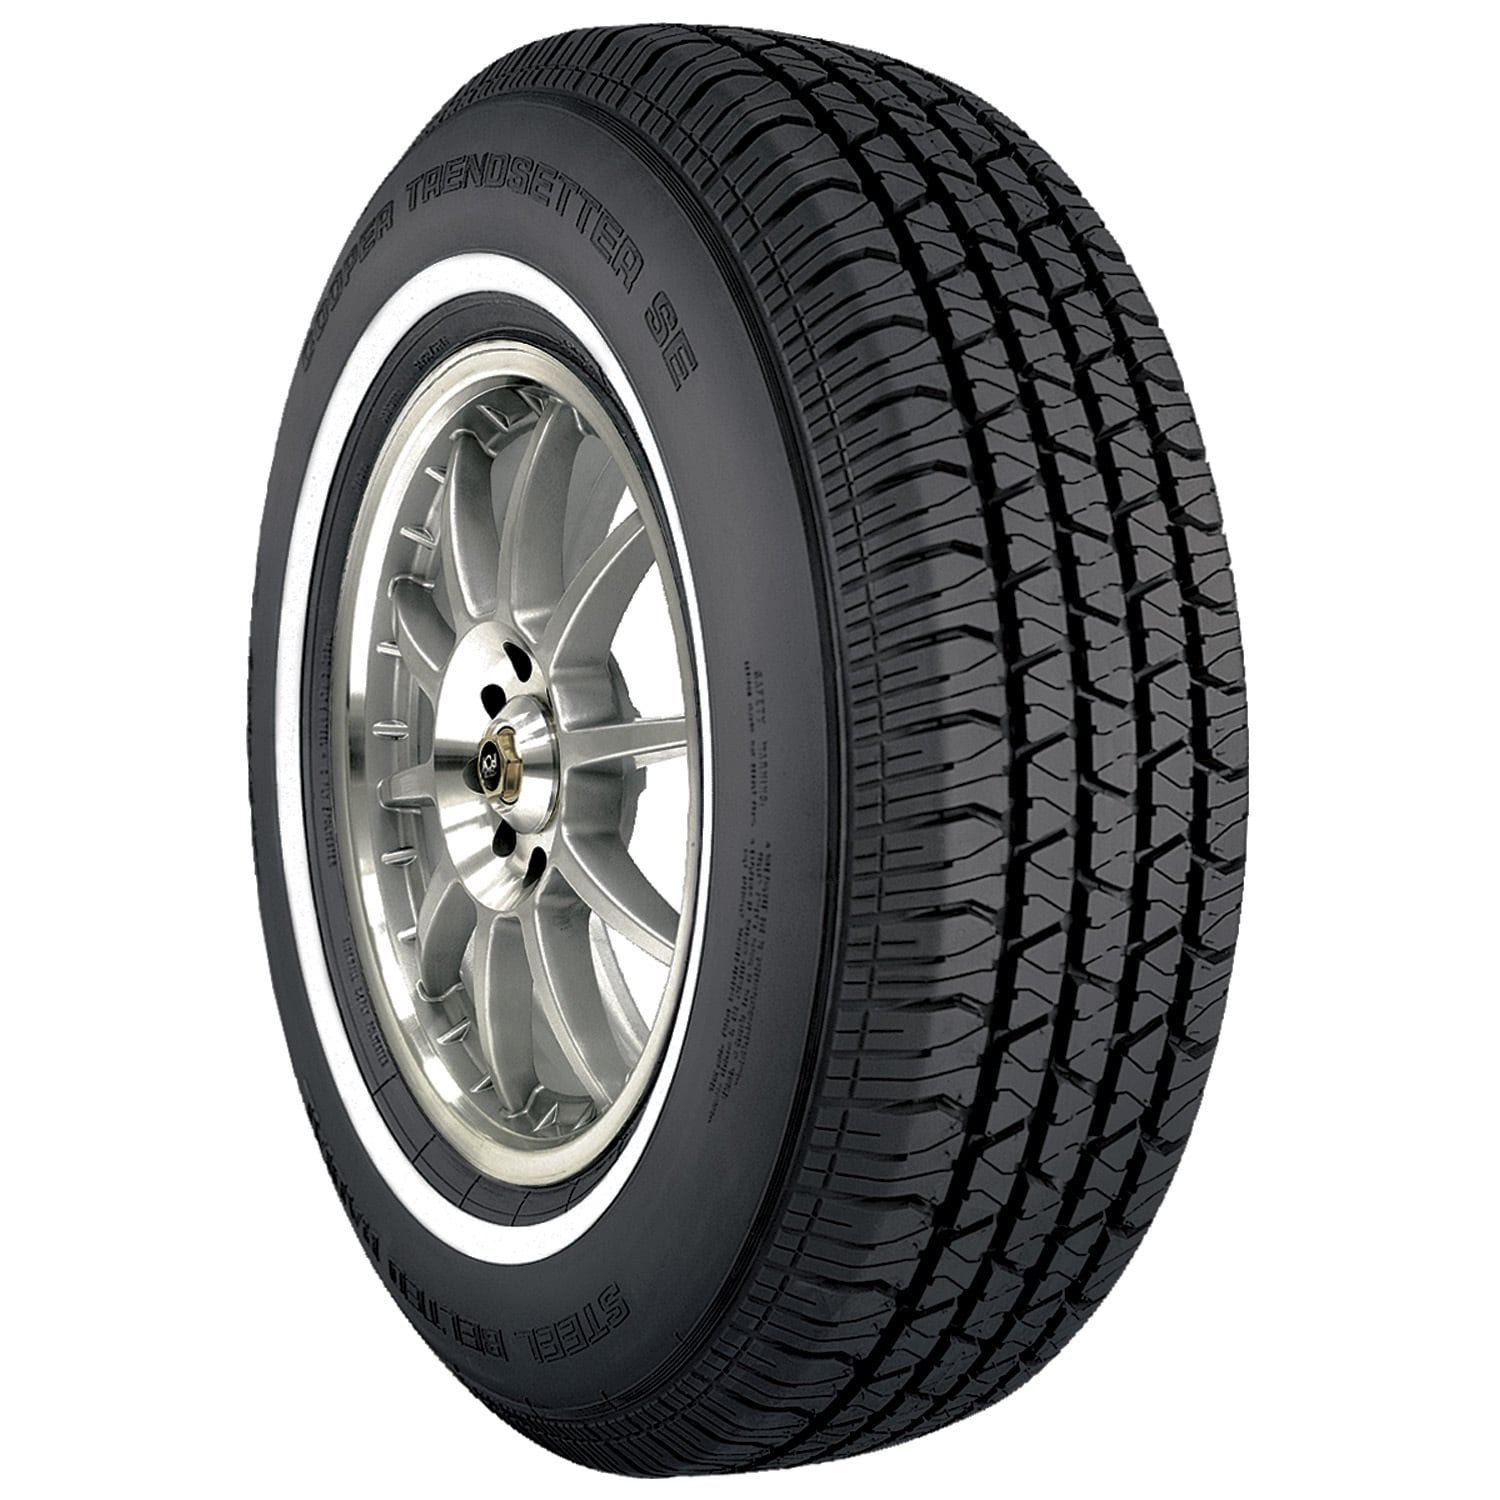 COOPER Trendsetter SE All Season Tire - 235/75R15 105S (B...